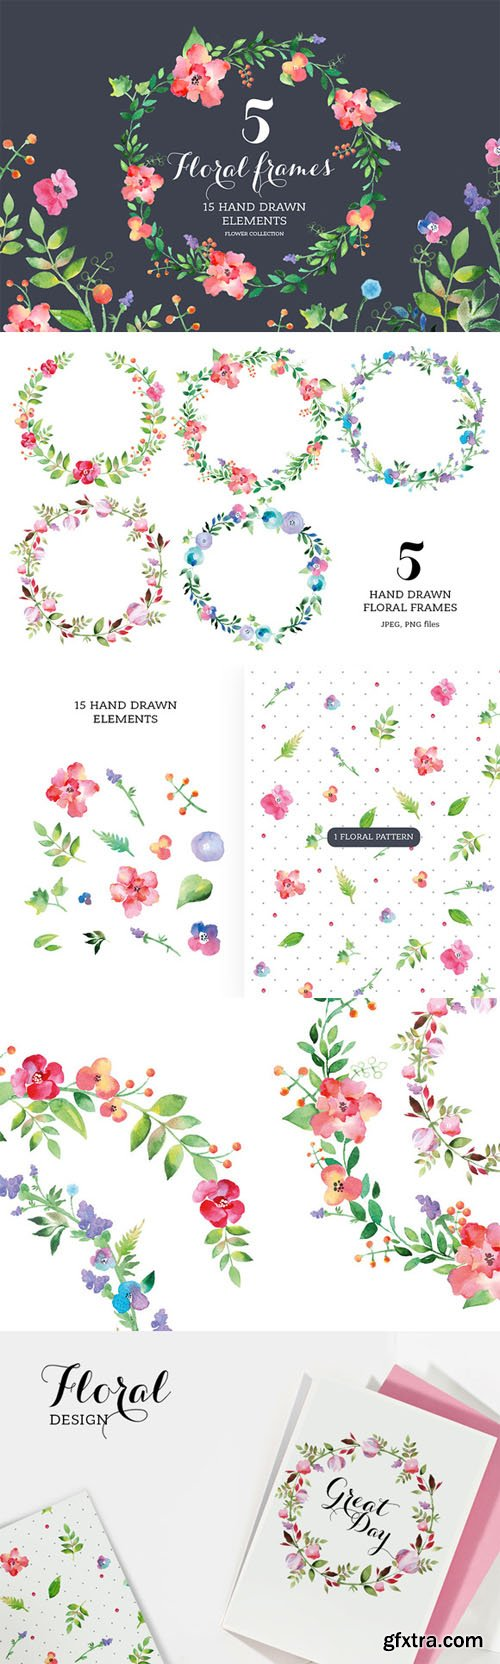 Set of watercolour Floral Frames - CM 65547